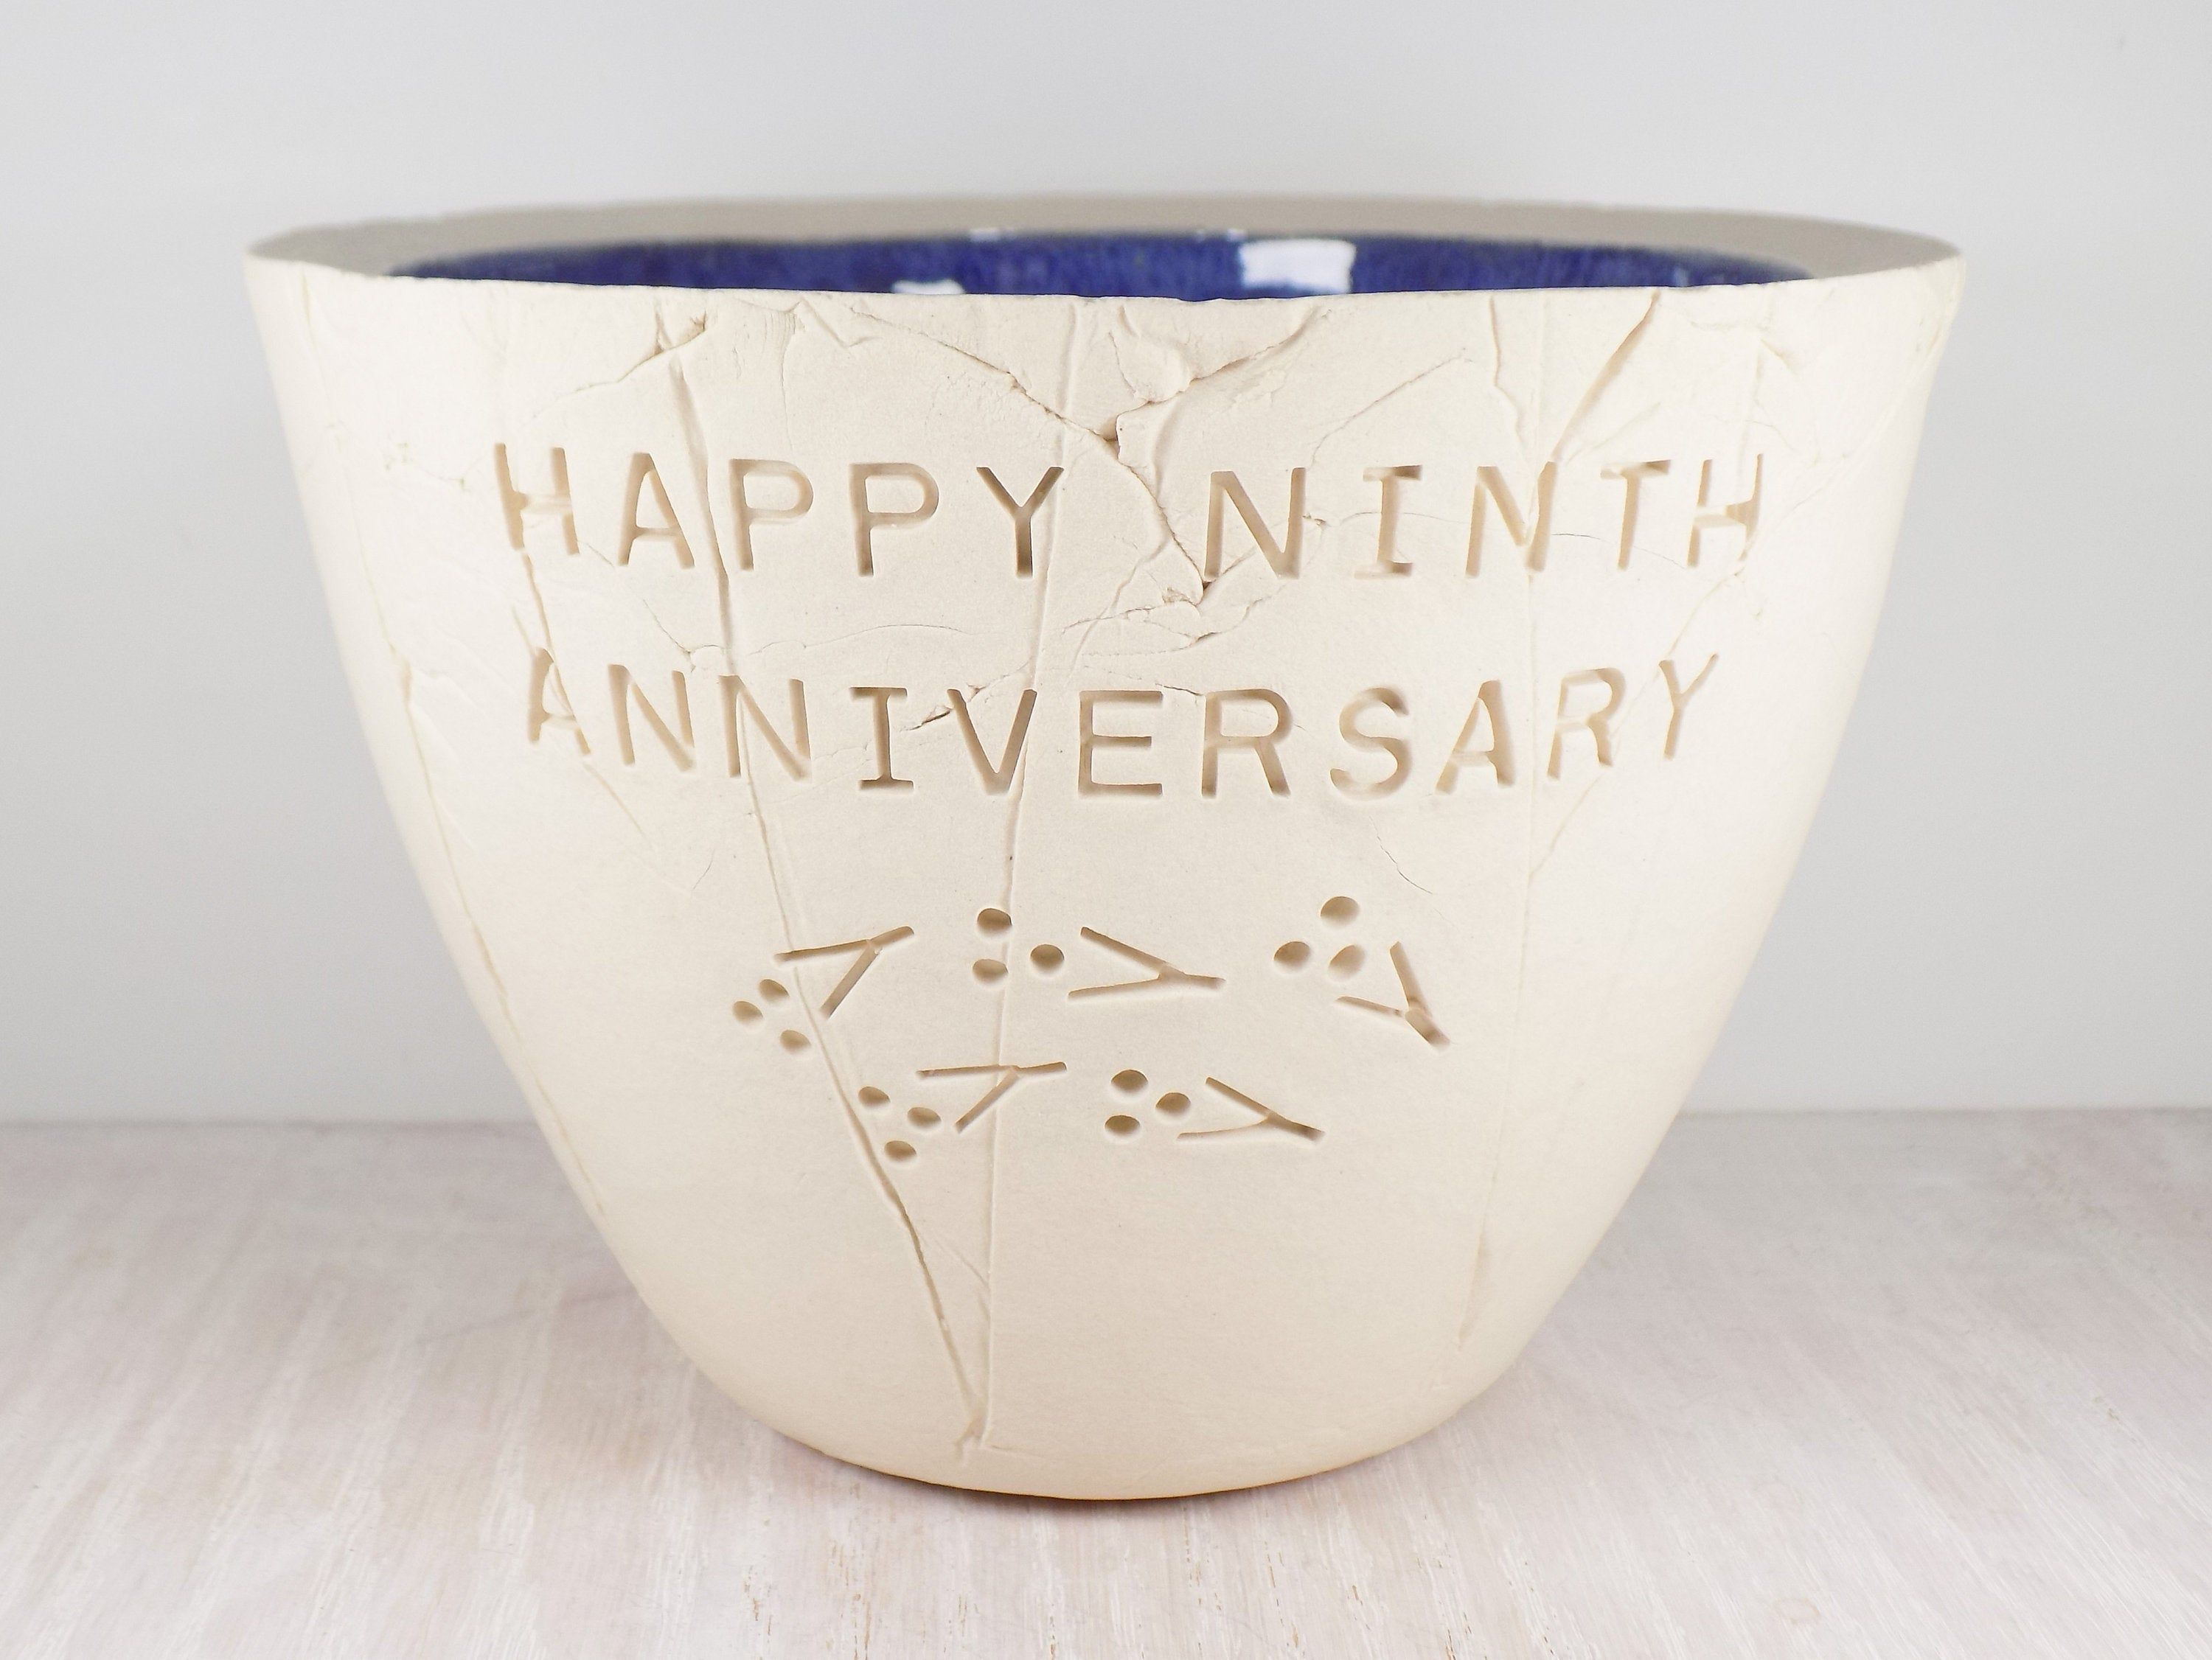 Ninth Wedding Anniversary Pottery Bowl 9th Anniversary Gift Etsy In 2020 Unique Wedding Gifts Wedding Gift Wife Anniversary Gifts